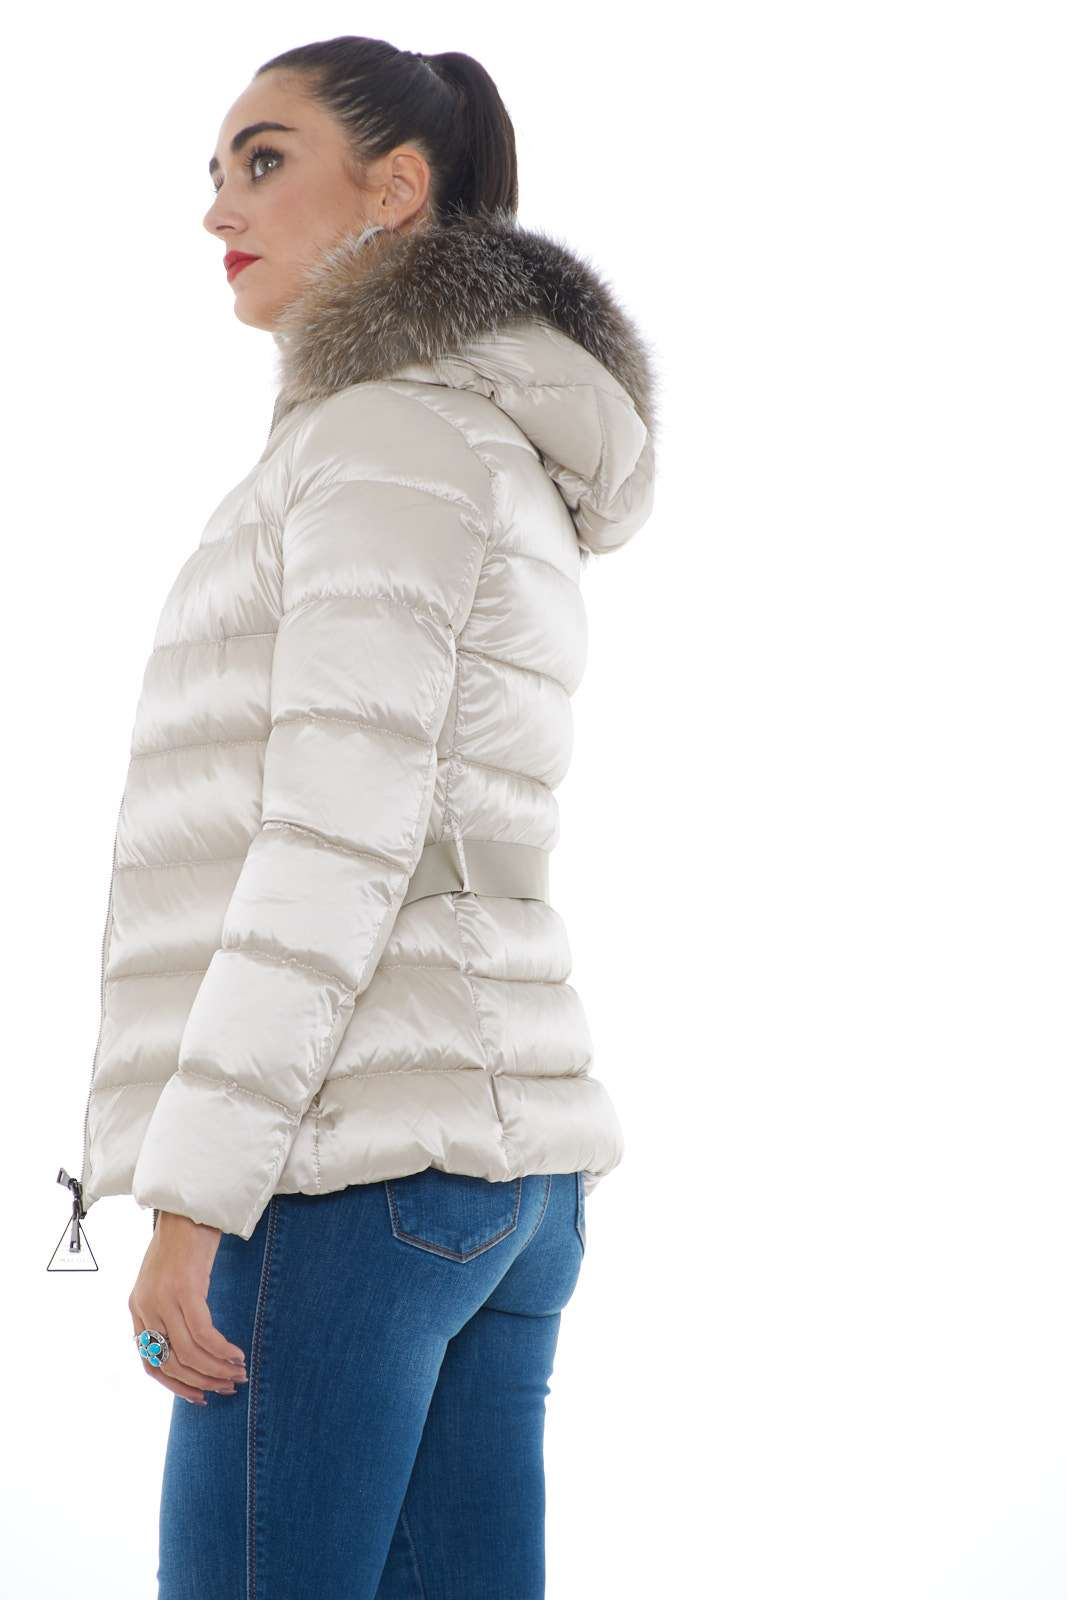 https://www.parmax.com/media/catalog/product/a/i/ai-outlet_parmax-giubbino-donna-moncler-tatie-b.jpg